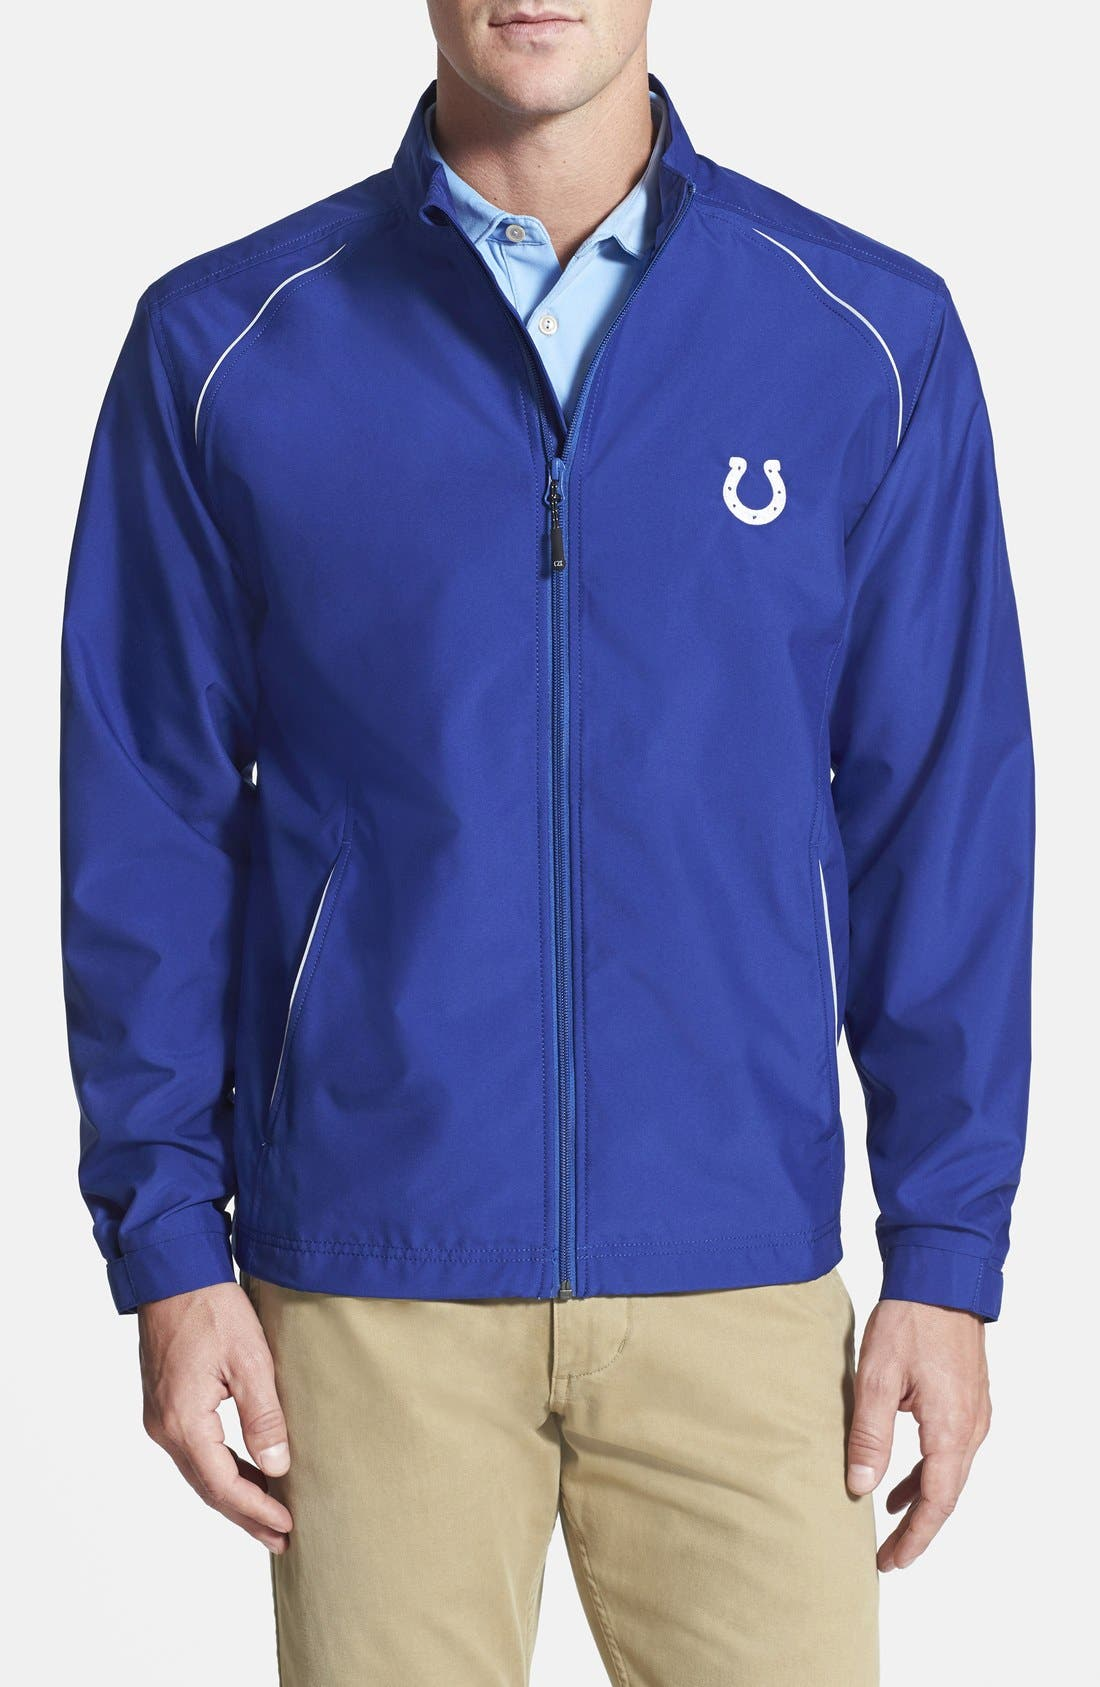 Cutter & Buck Indianapolis Colts - Beacon WeatherTec Wind & Water Resistant Jacket